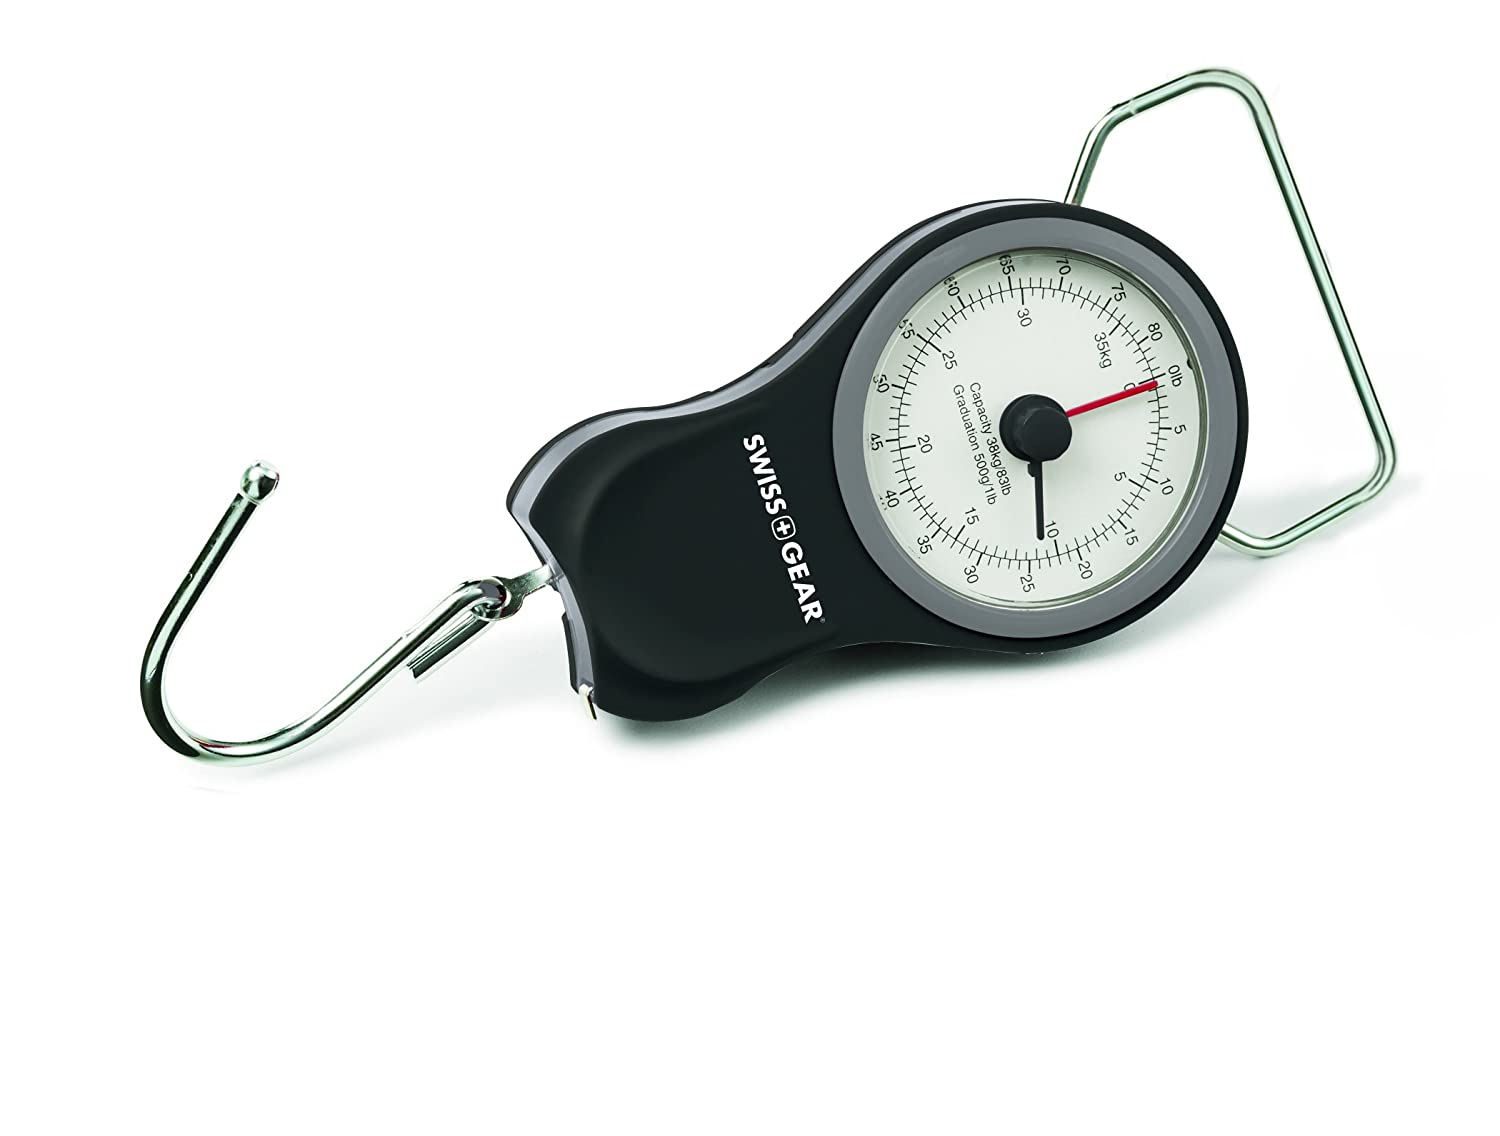 SwissGear Manual Luggage Scale with Built-in Tape Measure - Weighs Bags up to 83 Pounds and Measures Bags up to 40 Inches, Grey, One Size E&B Giftware - Samsonite WJ6306GY